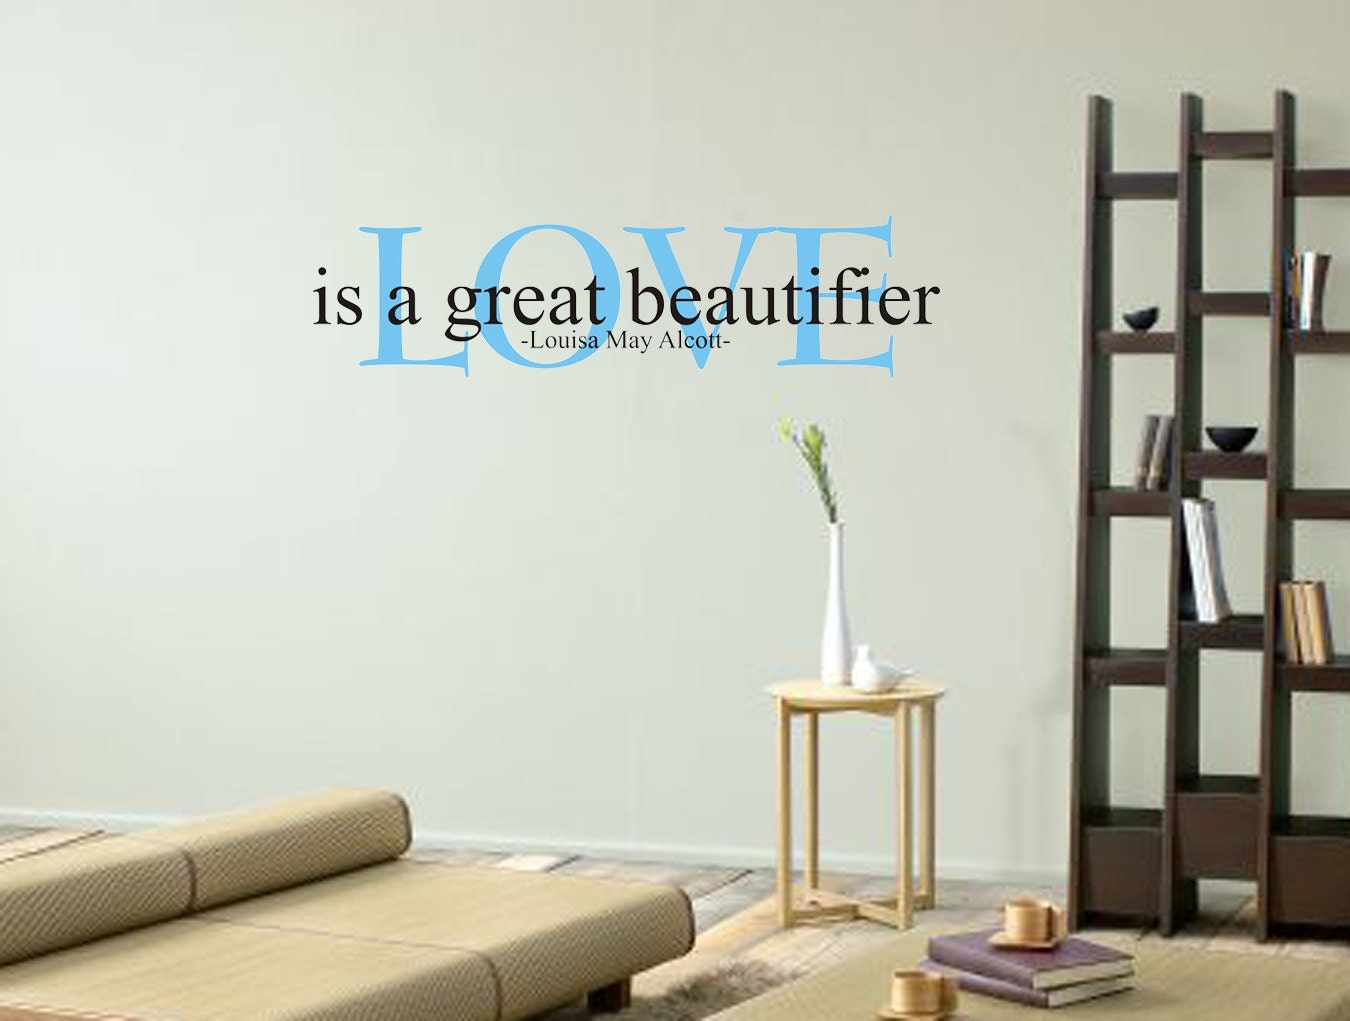 LOVE is a great beautifier - Louisa May Alscott   Vinyl Decal silhouette